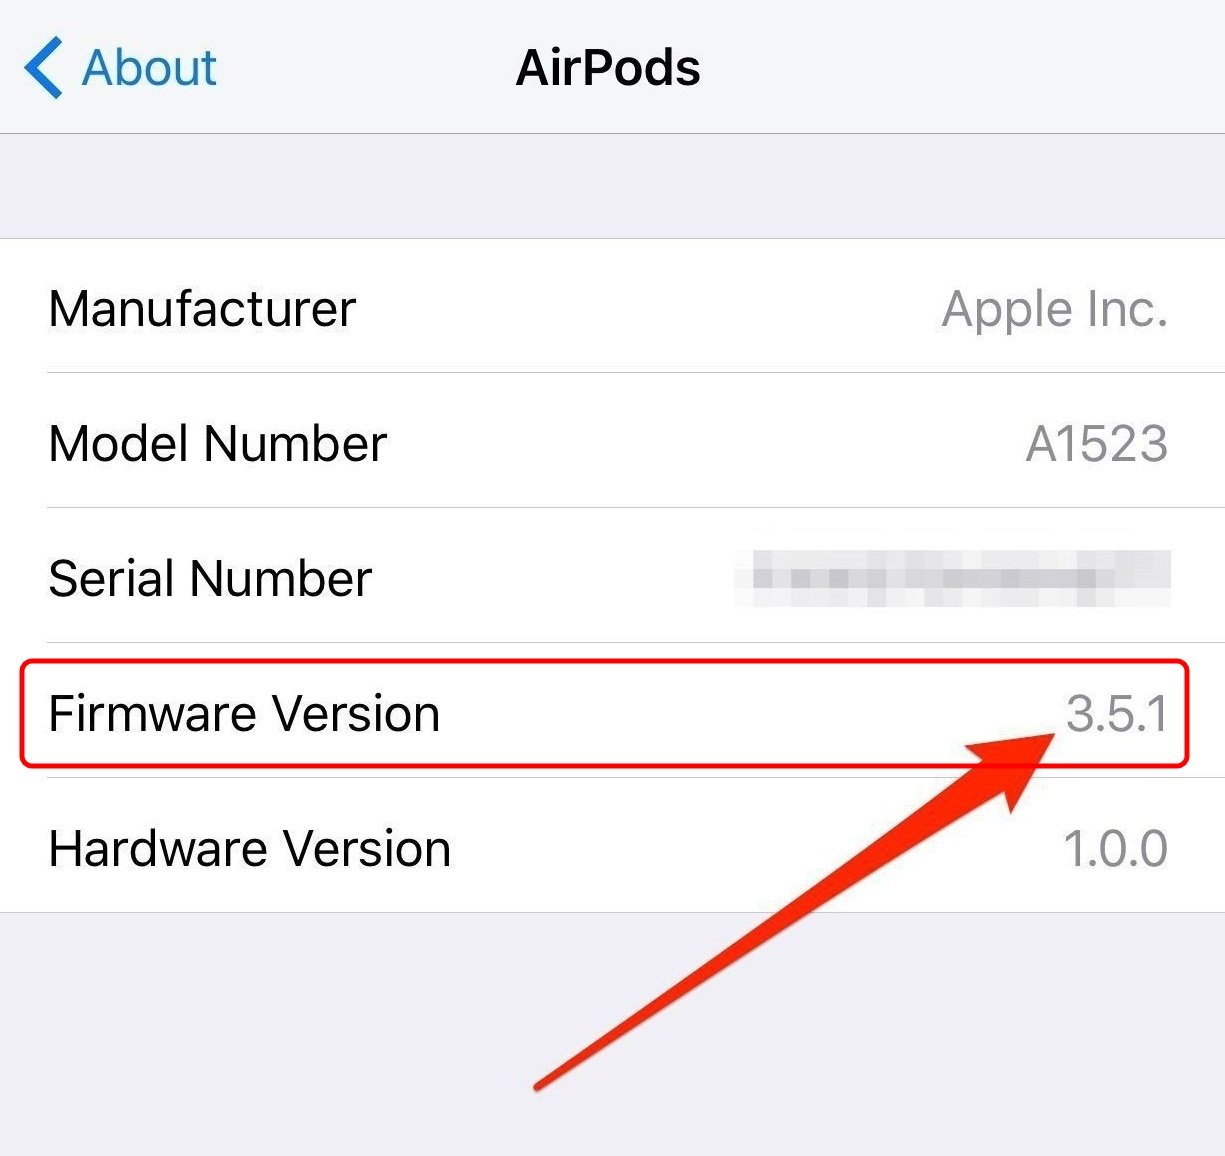 AirPods Install latest Firmware 3.5.1